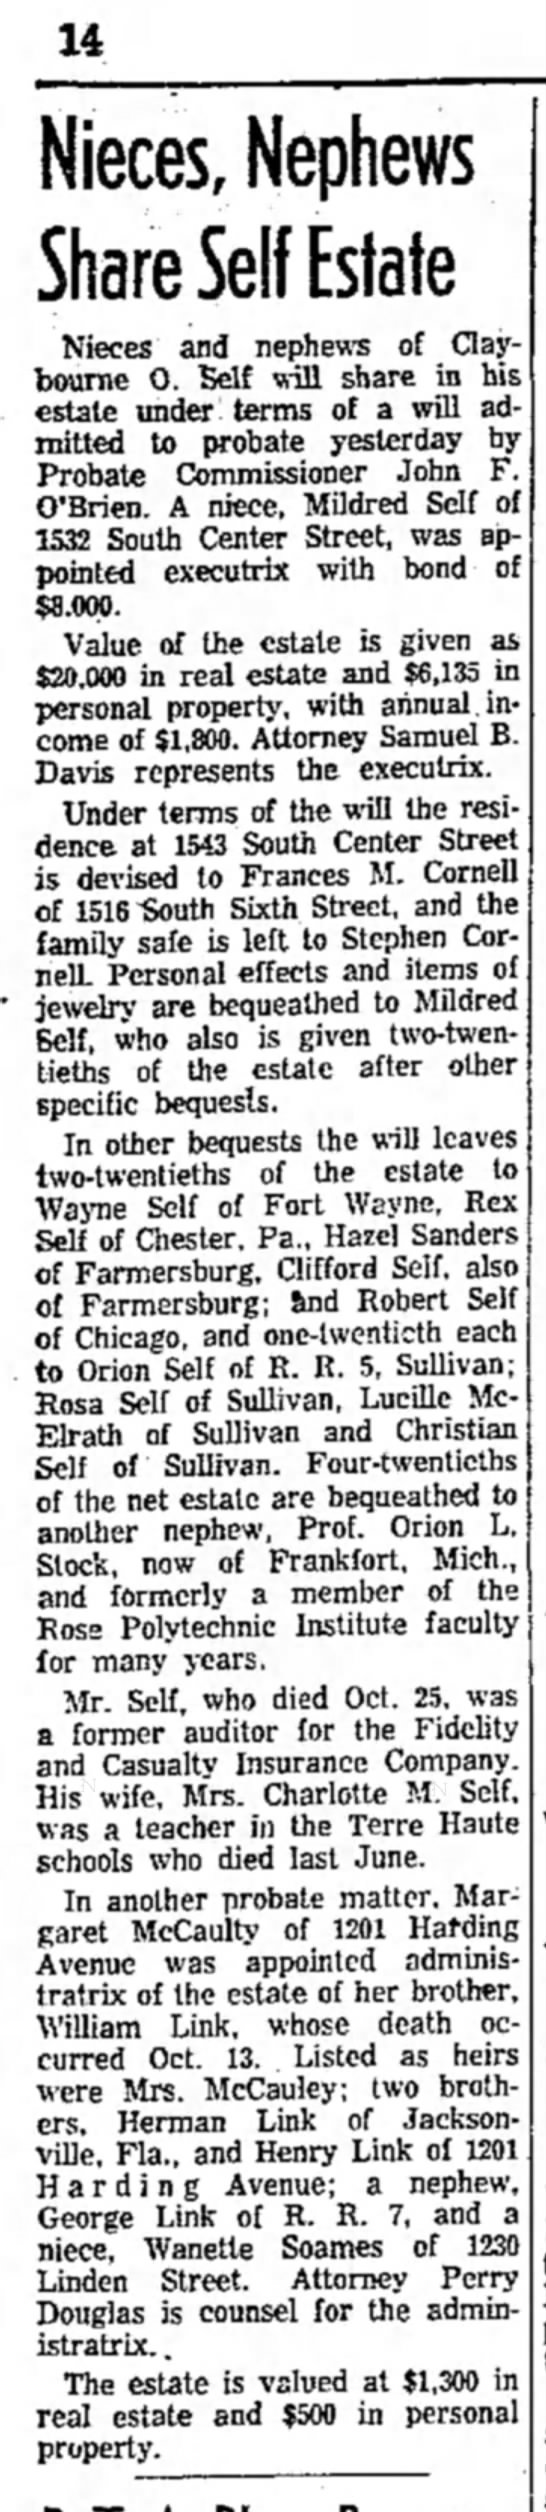 Nieces and Nephews share Self estate, Terre Haute Star, 30 October 1957, page 14 column1. - 14 Nieces, Nephews Share Self Estate Nieces and...